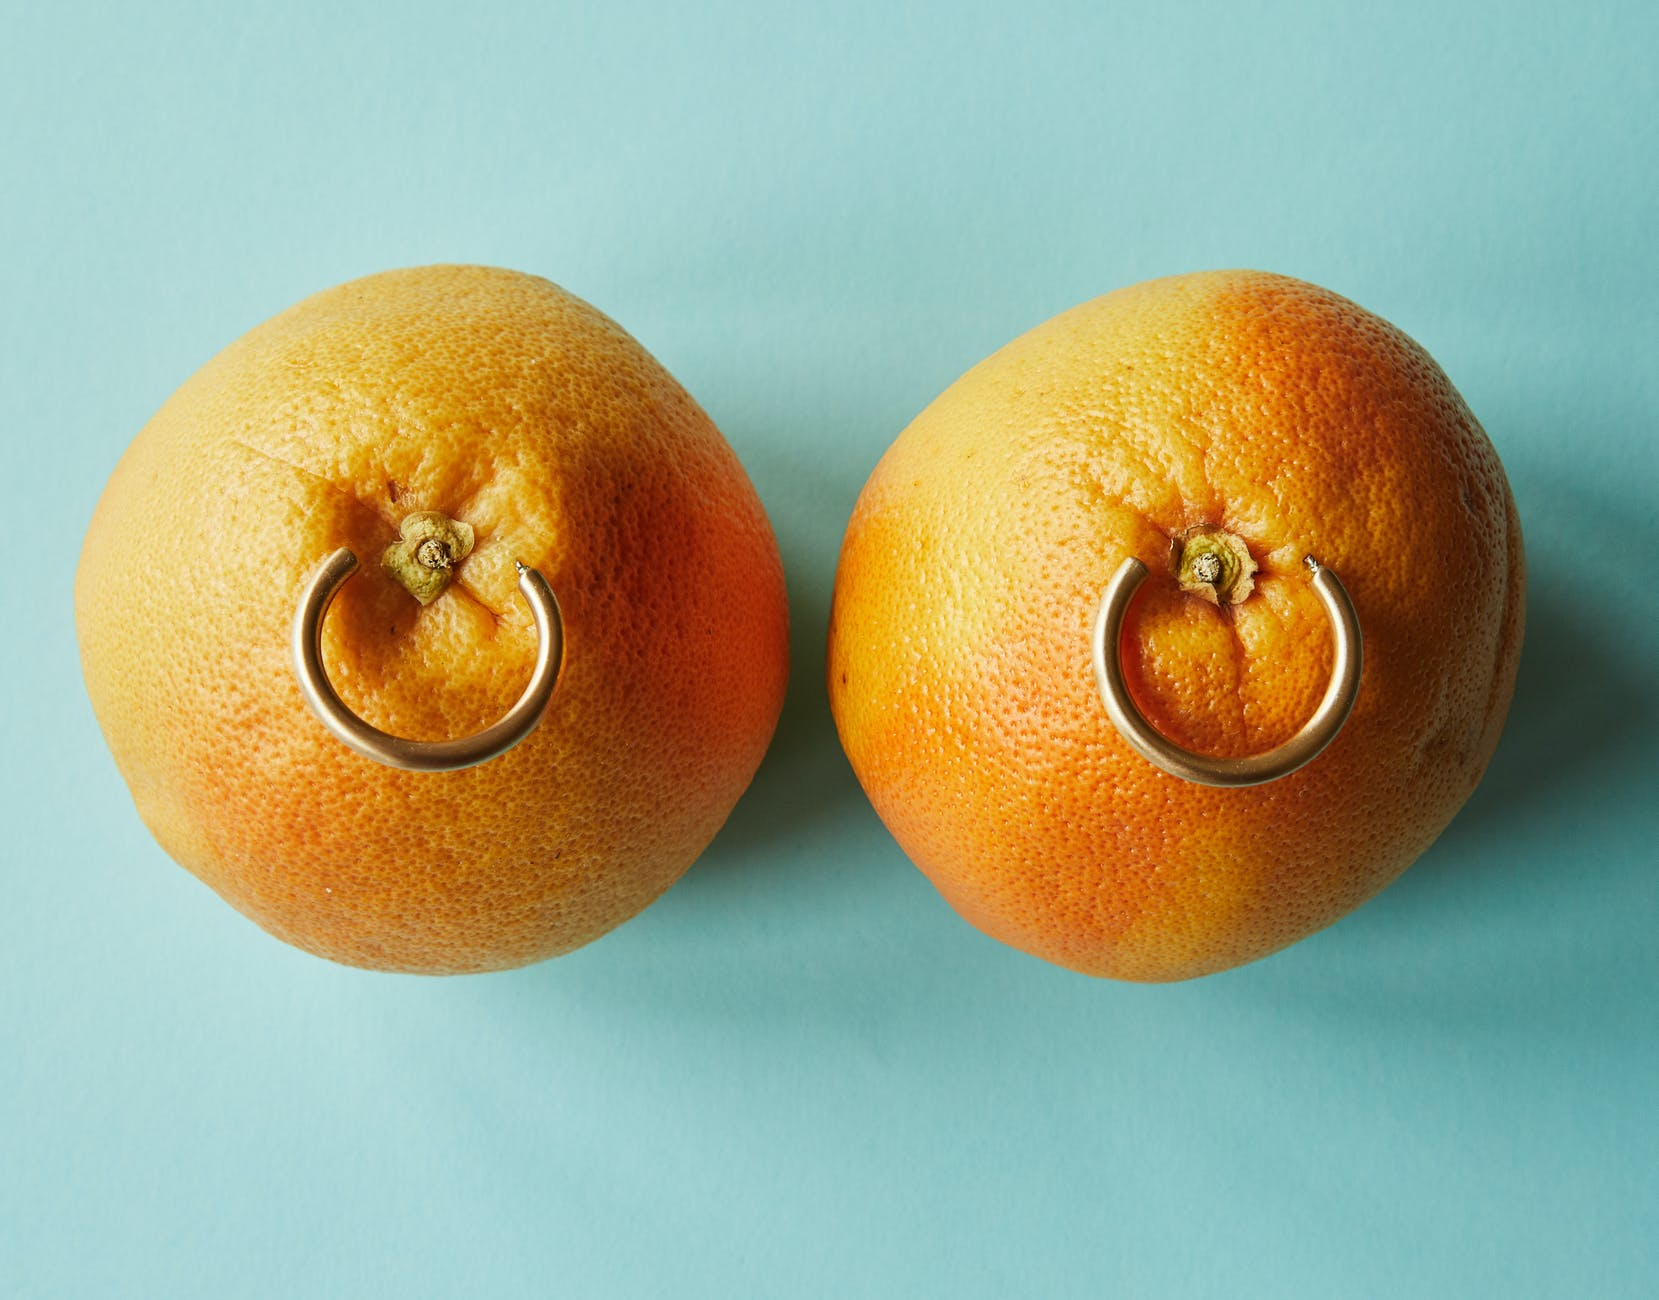 ripe tangerines with golden earrings against blue background